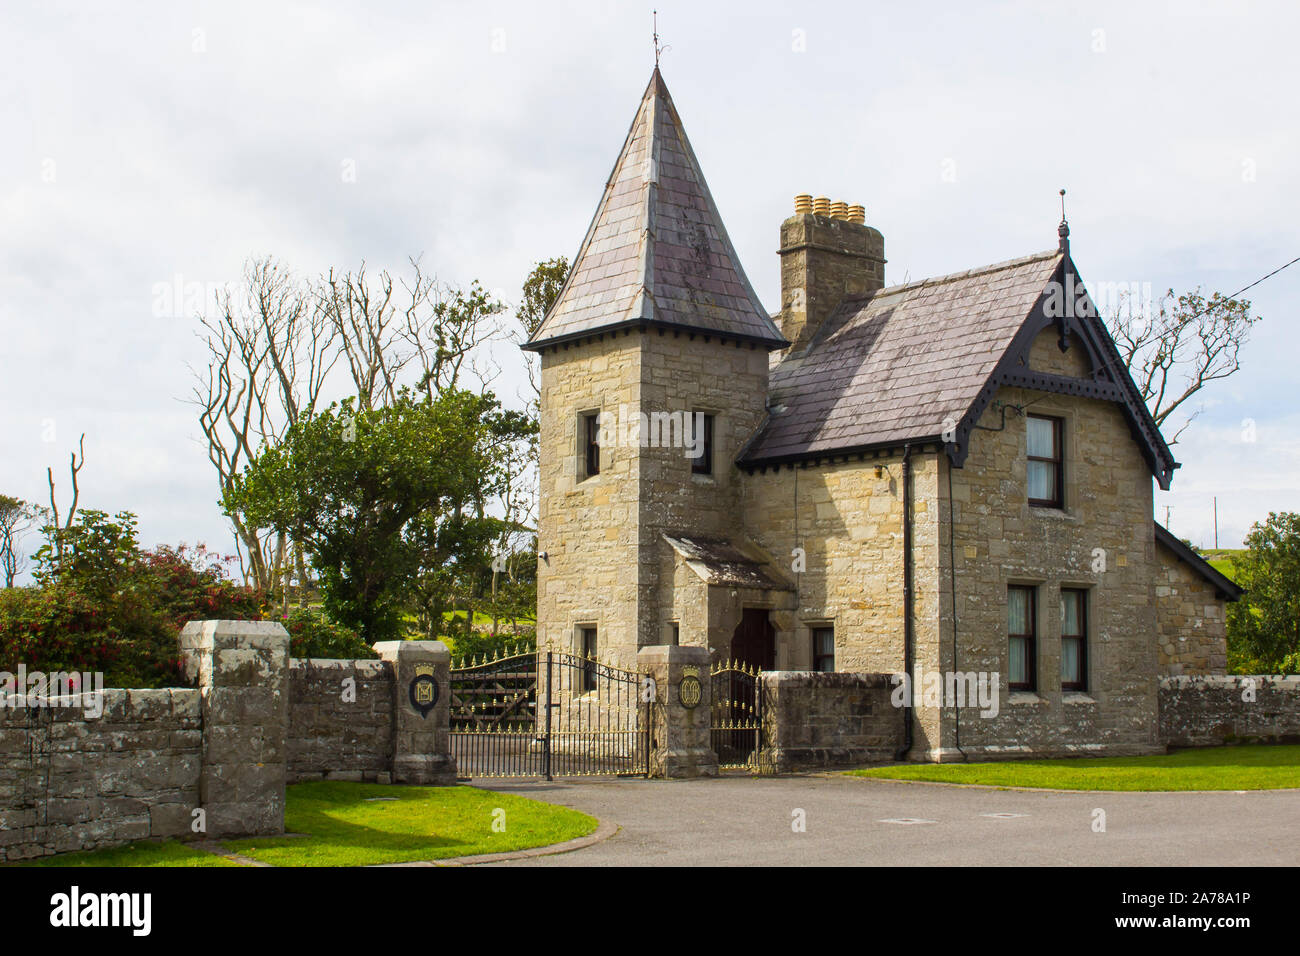 28 August 2019 The Gate Lodge Of Classiebawn Castle Estate And Grounds In Cliffoney County Sligo Ireland Once The Home Of The Late Lord Mountbatten Stock Photo Alamy